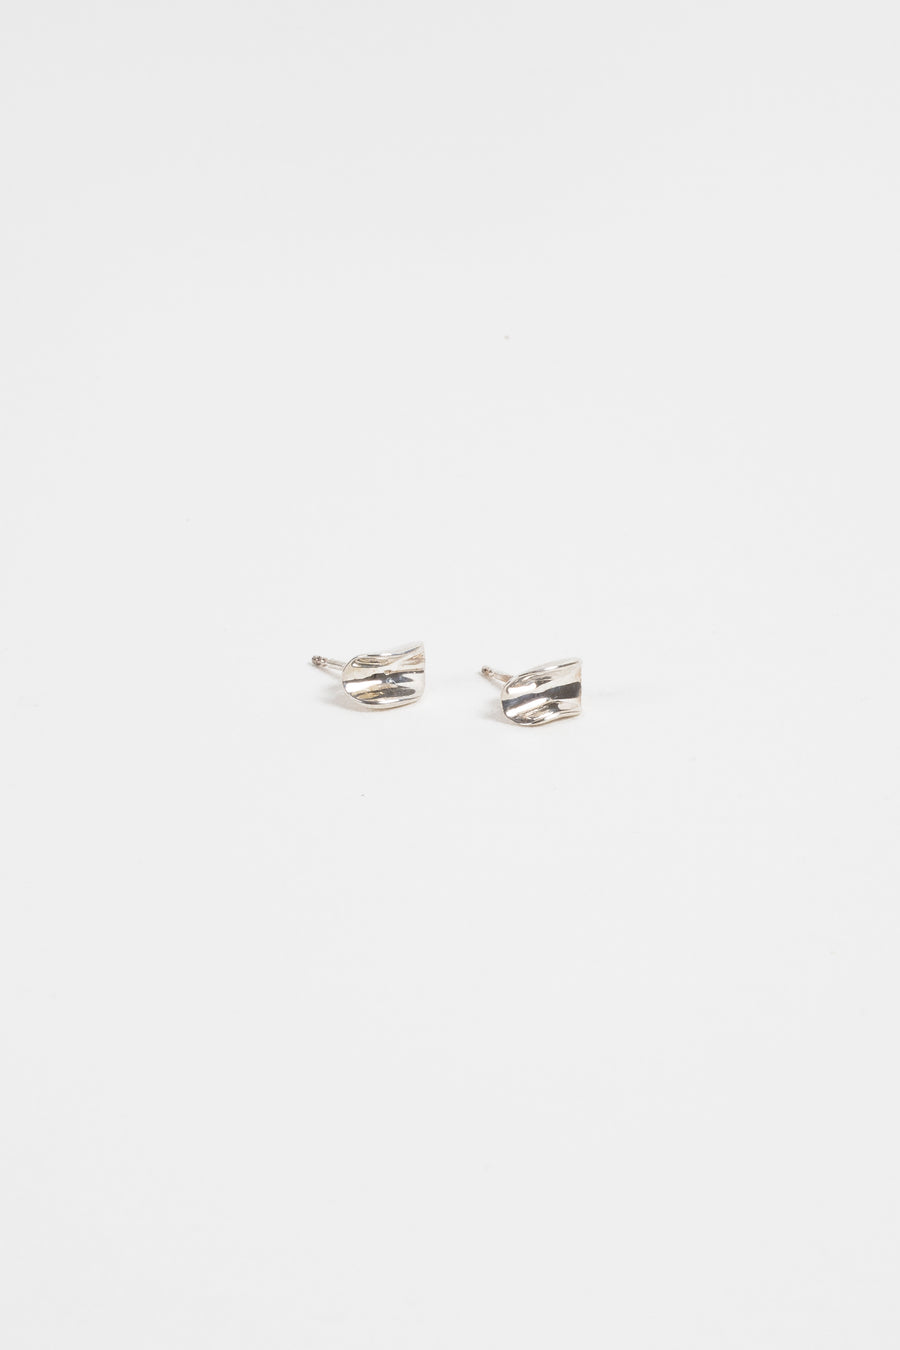 Eames Stud Earrings